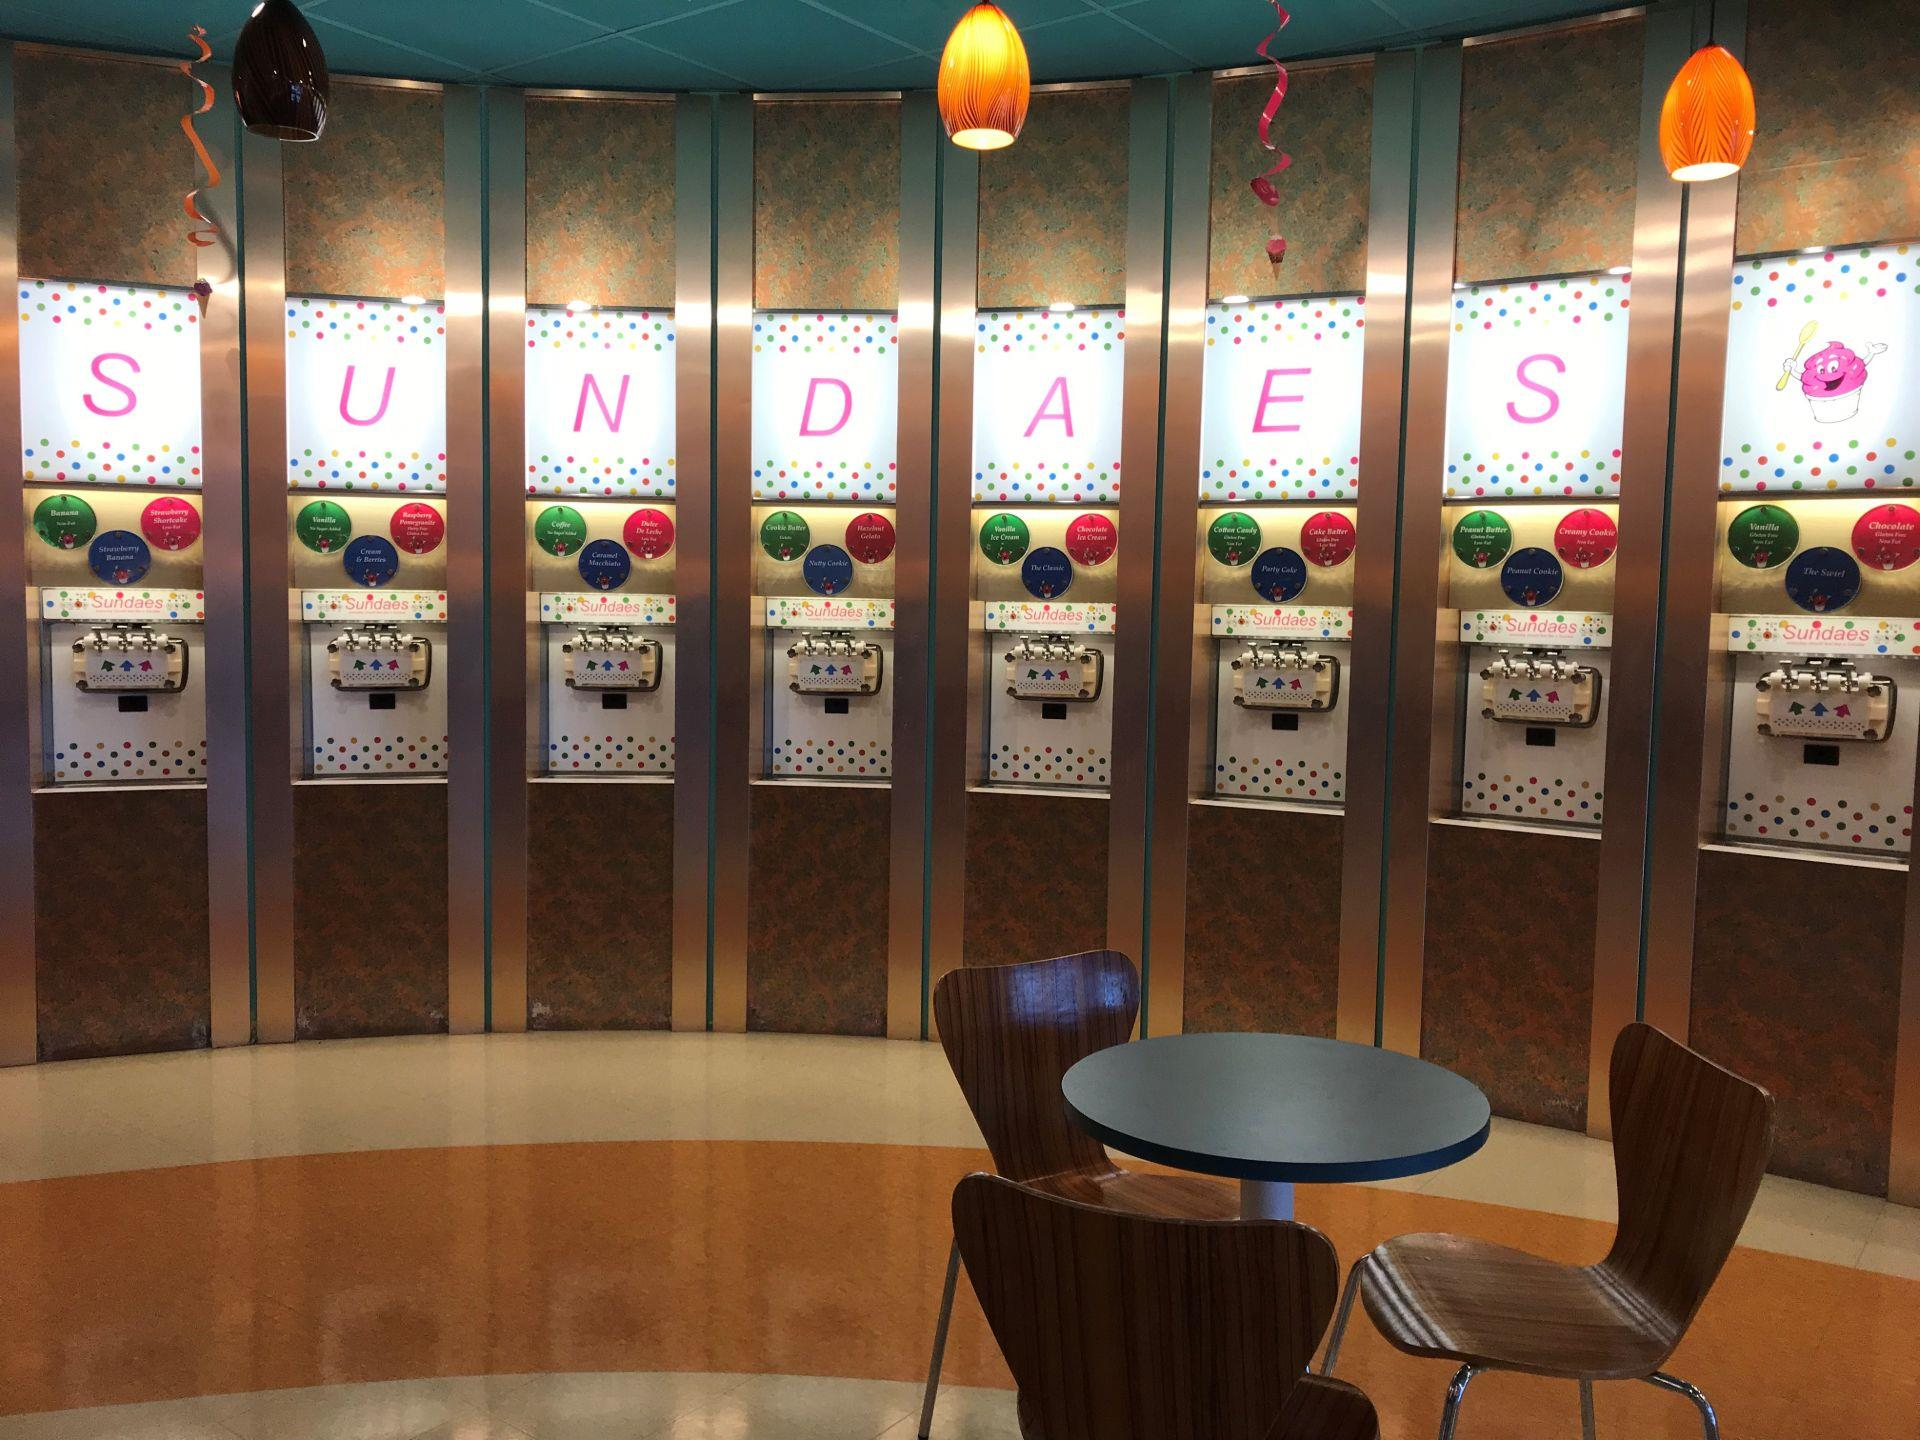 Self-serve ice cream machines lined up along a wall with Sundaes branding